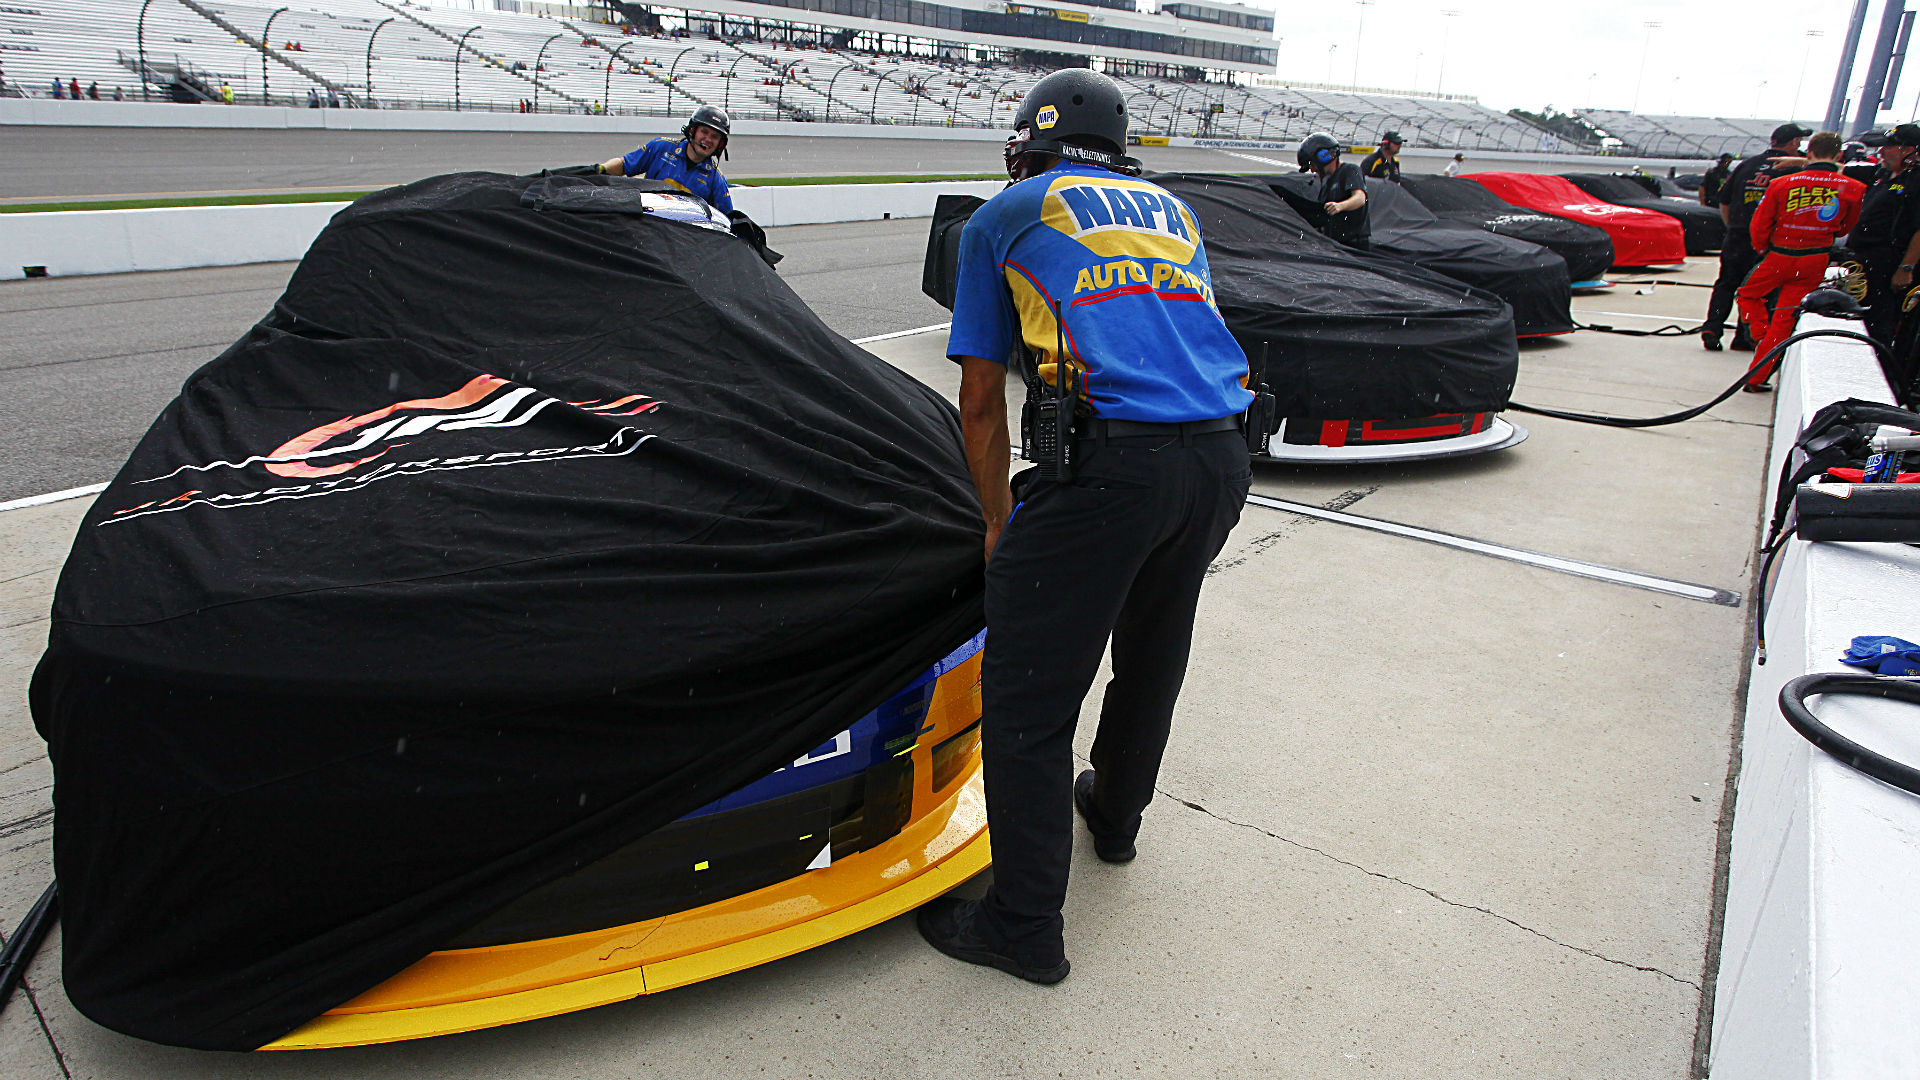 Toyota Owners 400 weather report: Drivers can expect rain Saturday